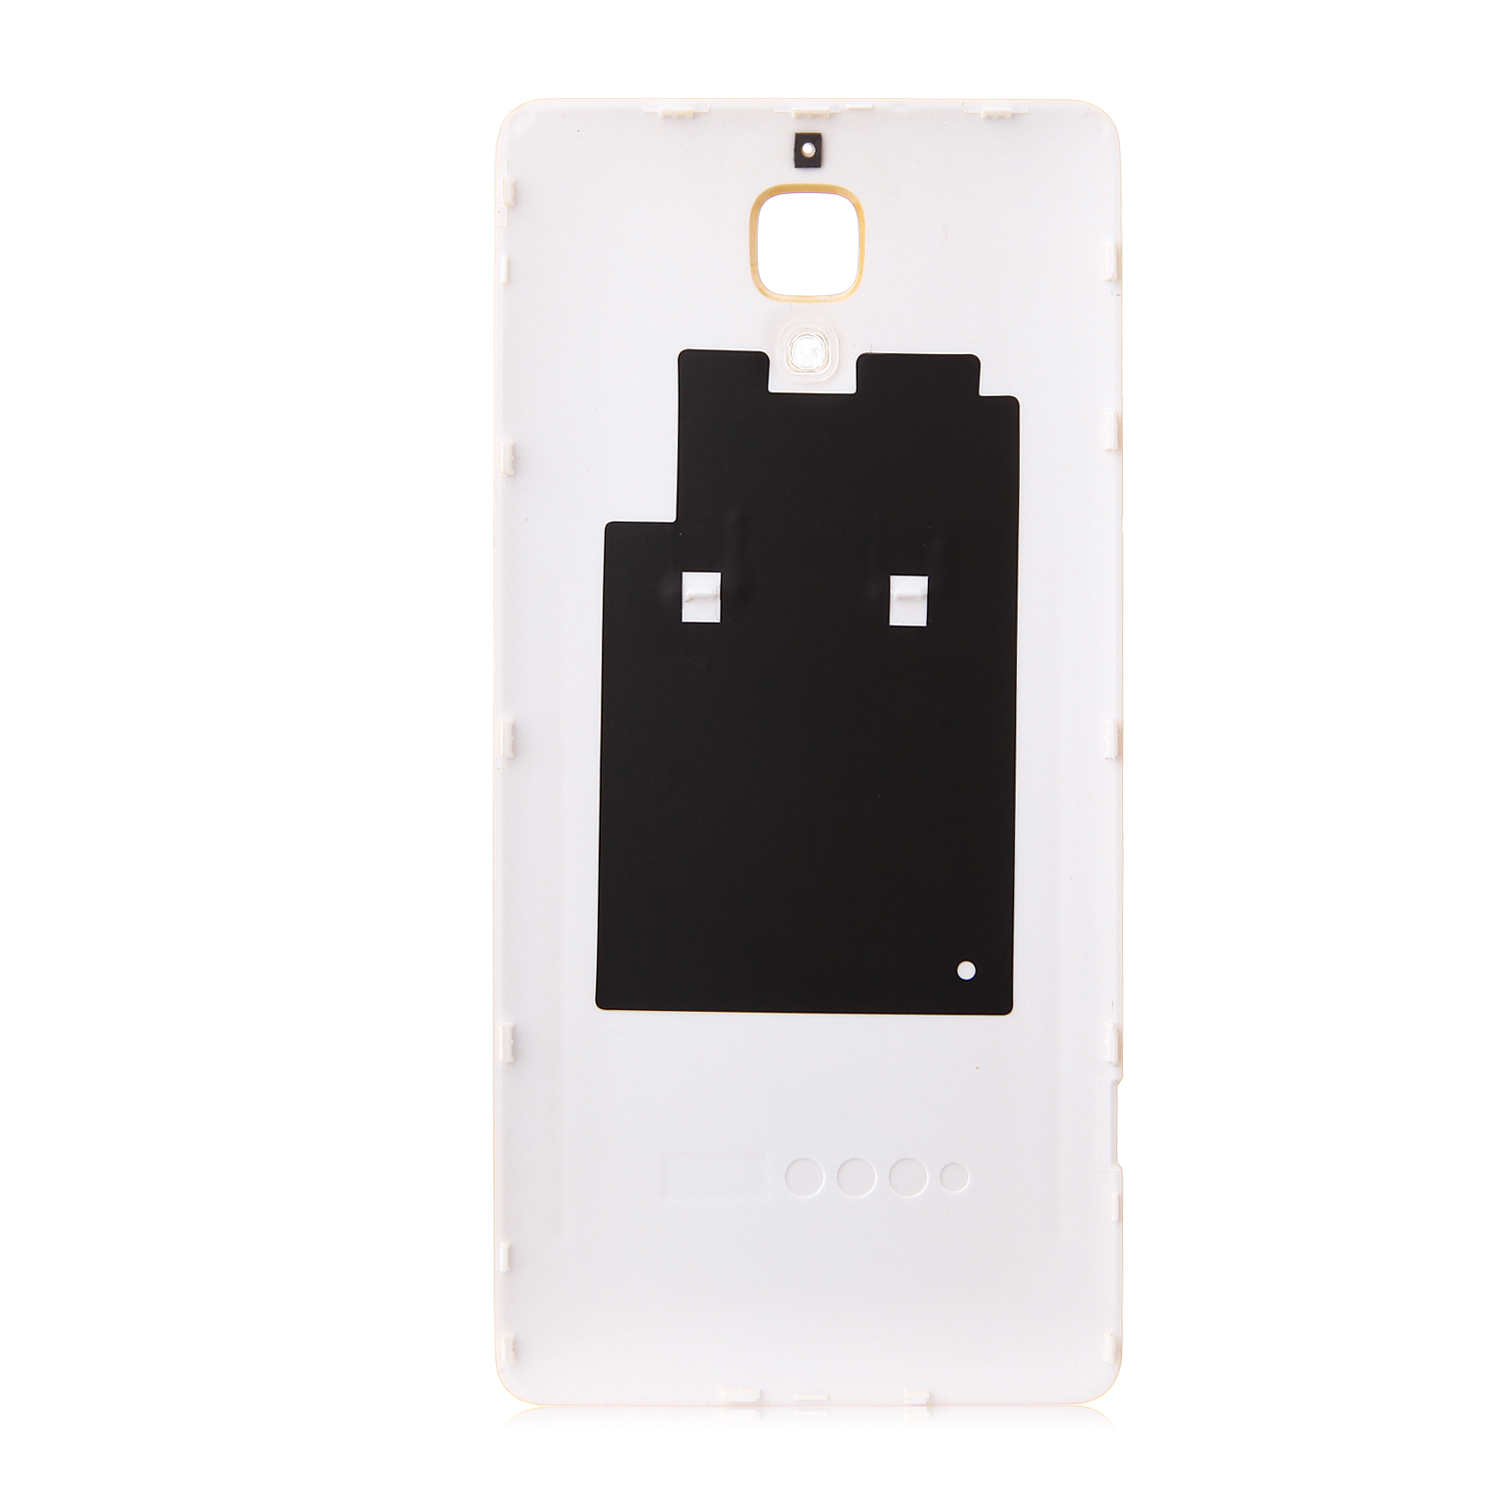 Replacement Battery Cover Back Case for XIAOMI MI4 Smartphone Golden